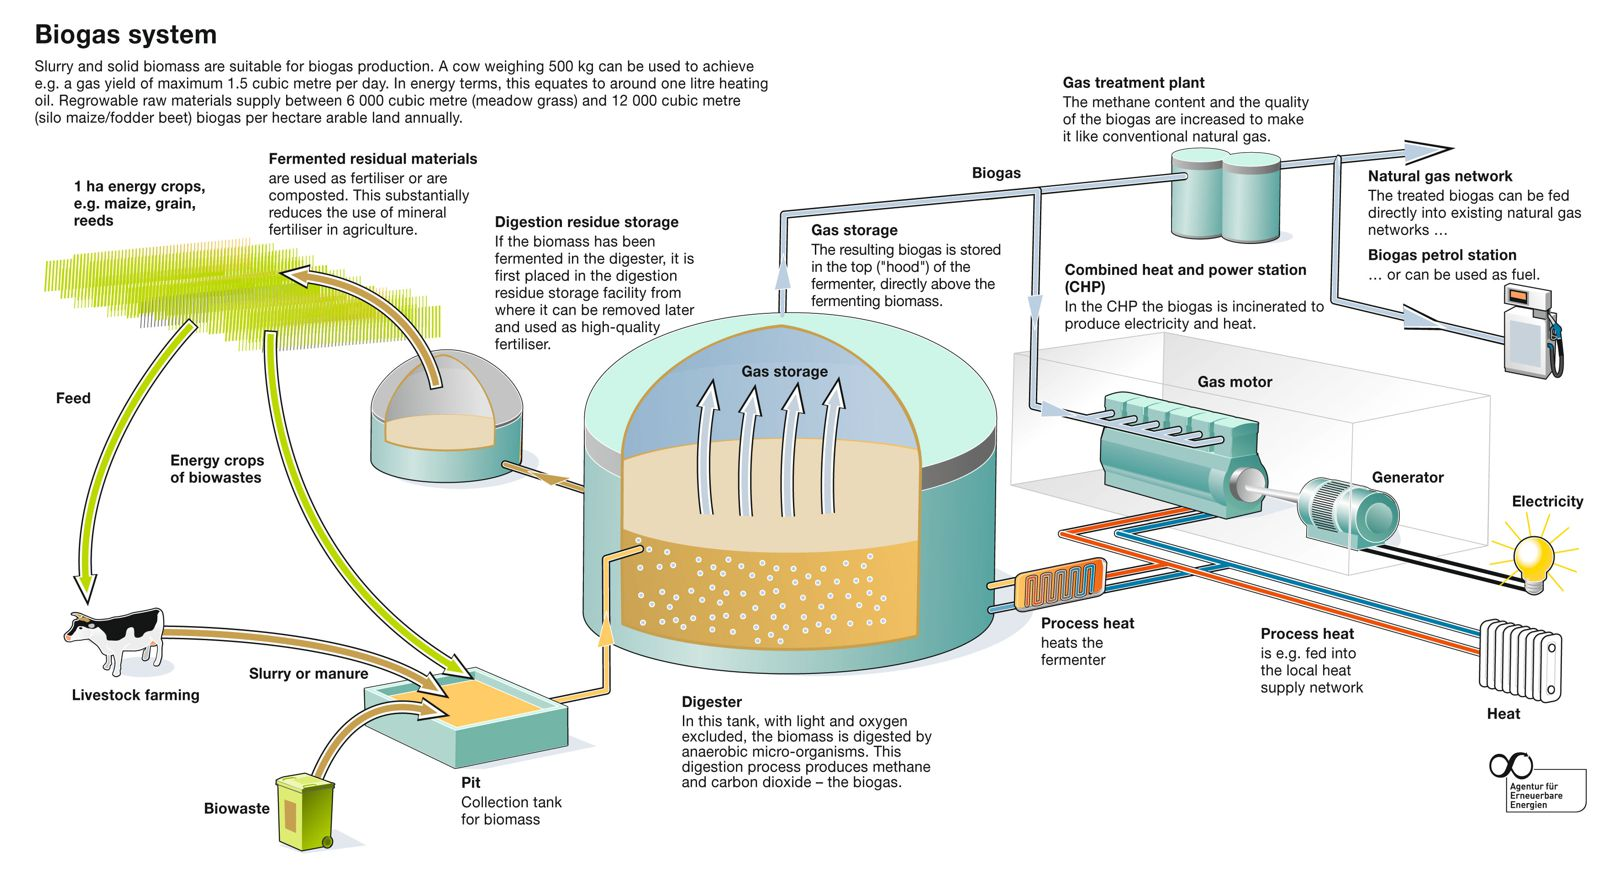 Diagram illustrating a typical biogas plant